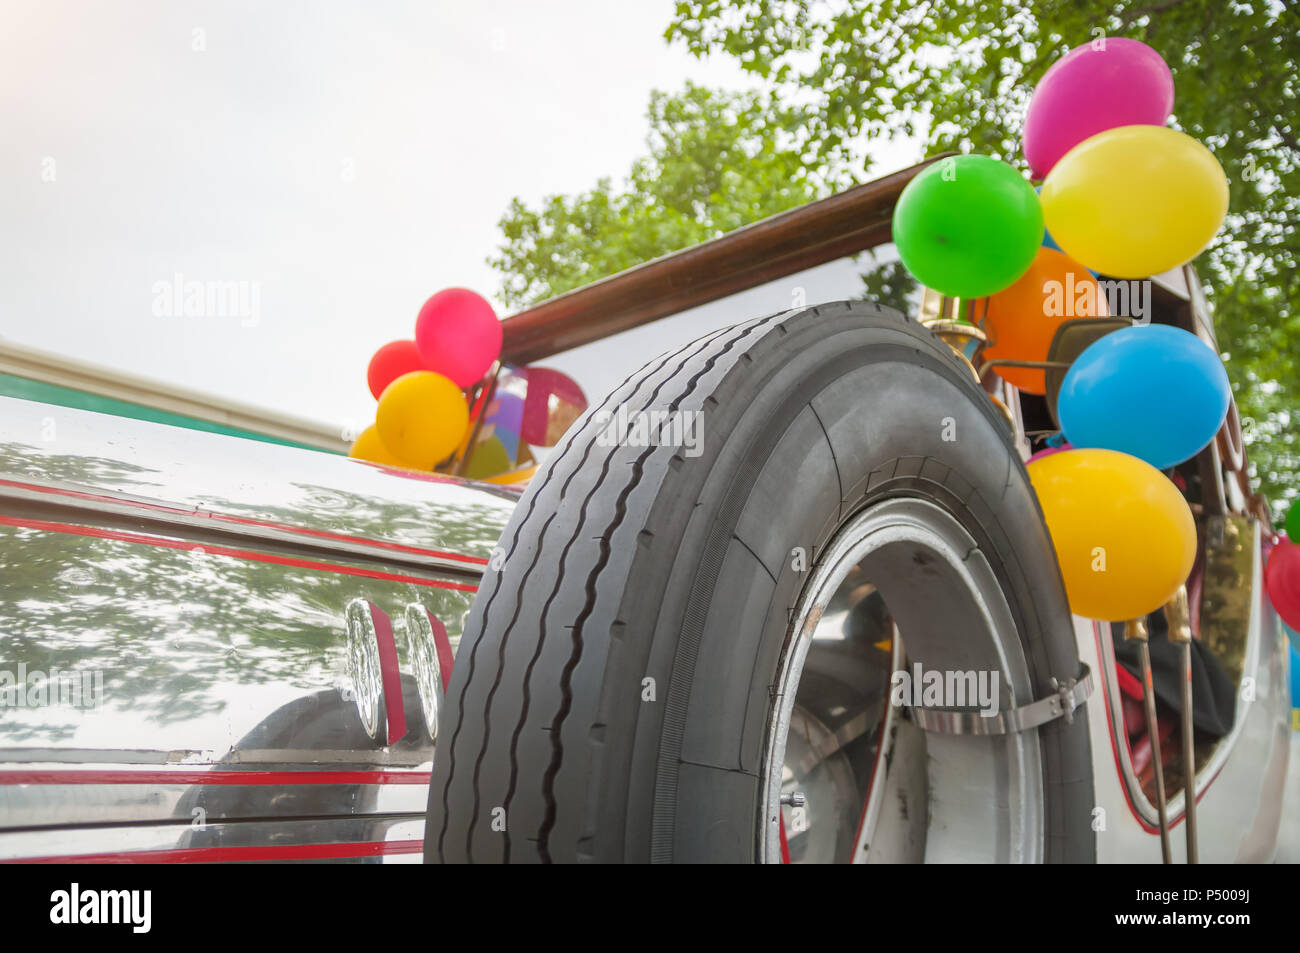 Wedding Car Balloon Stock Photos Wedding Car Balloon Stock